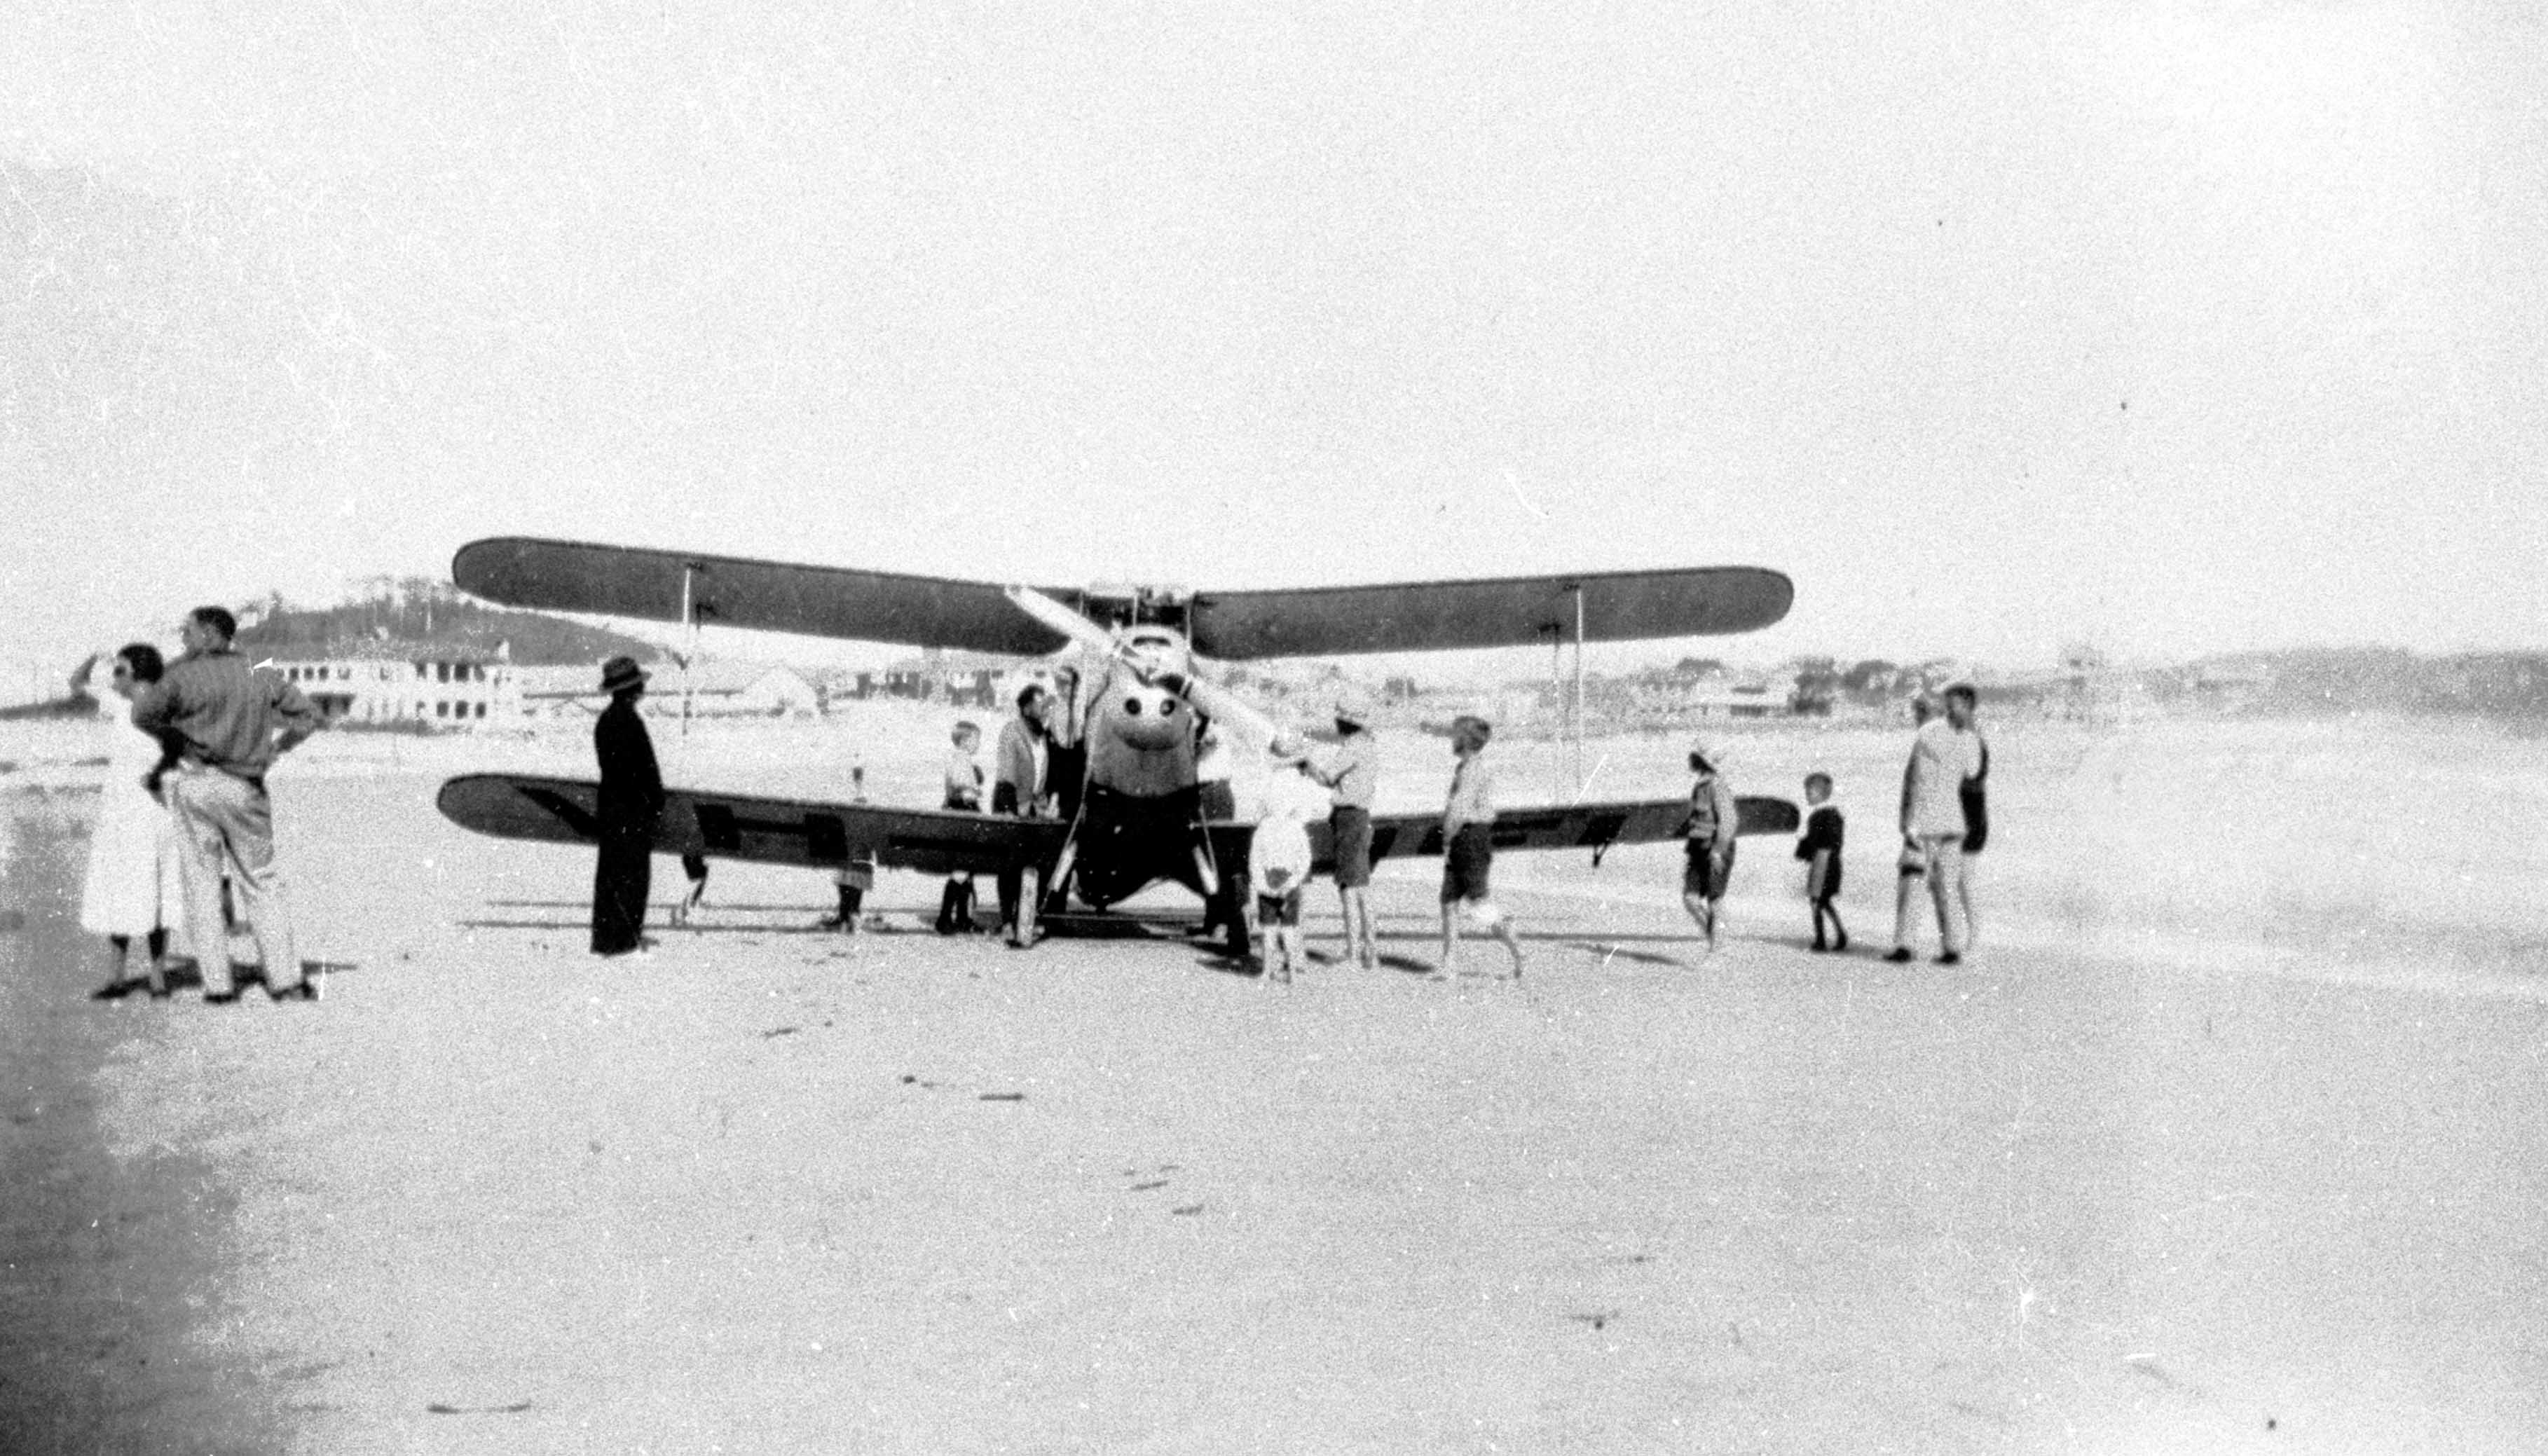 Photo: Action 7 Plane on Greenmount Beach, Coolangatta, Queensland, circa 1932 [picture] / Photographer unknown. Asset name LS-LSP-CD298-IMG0032